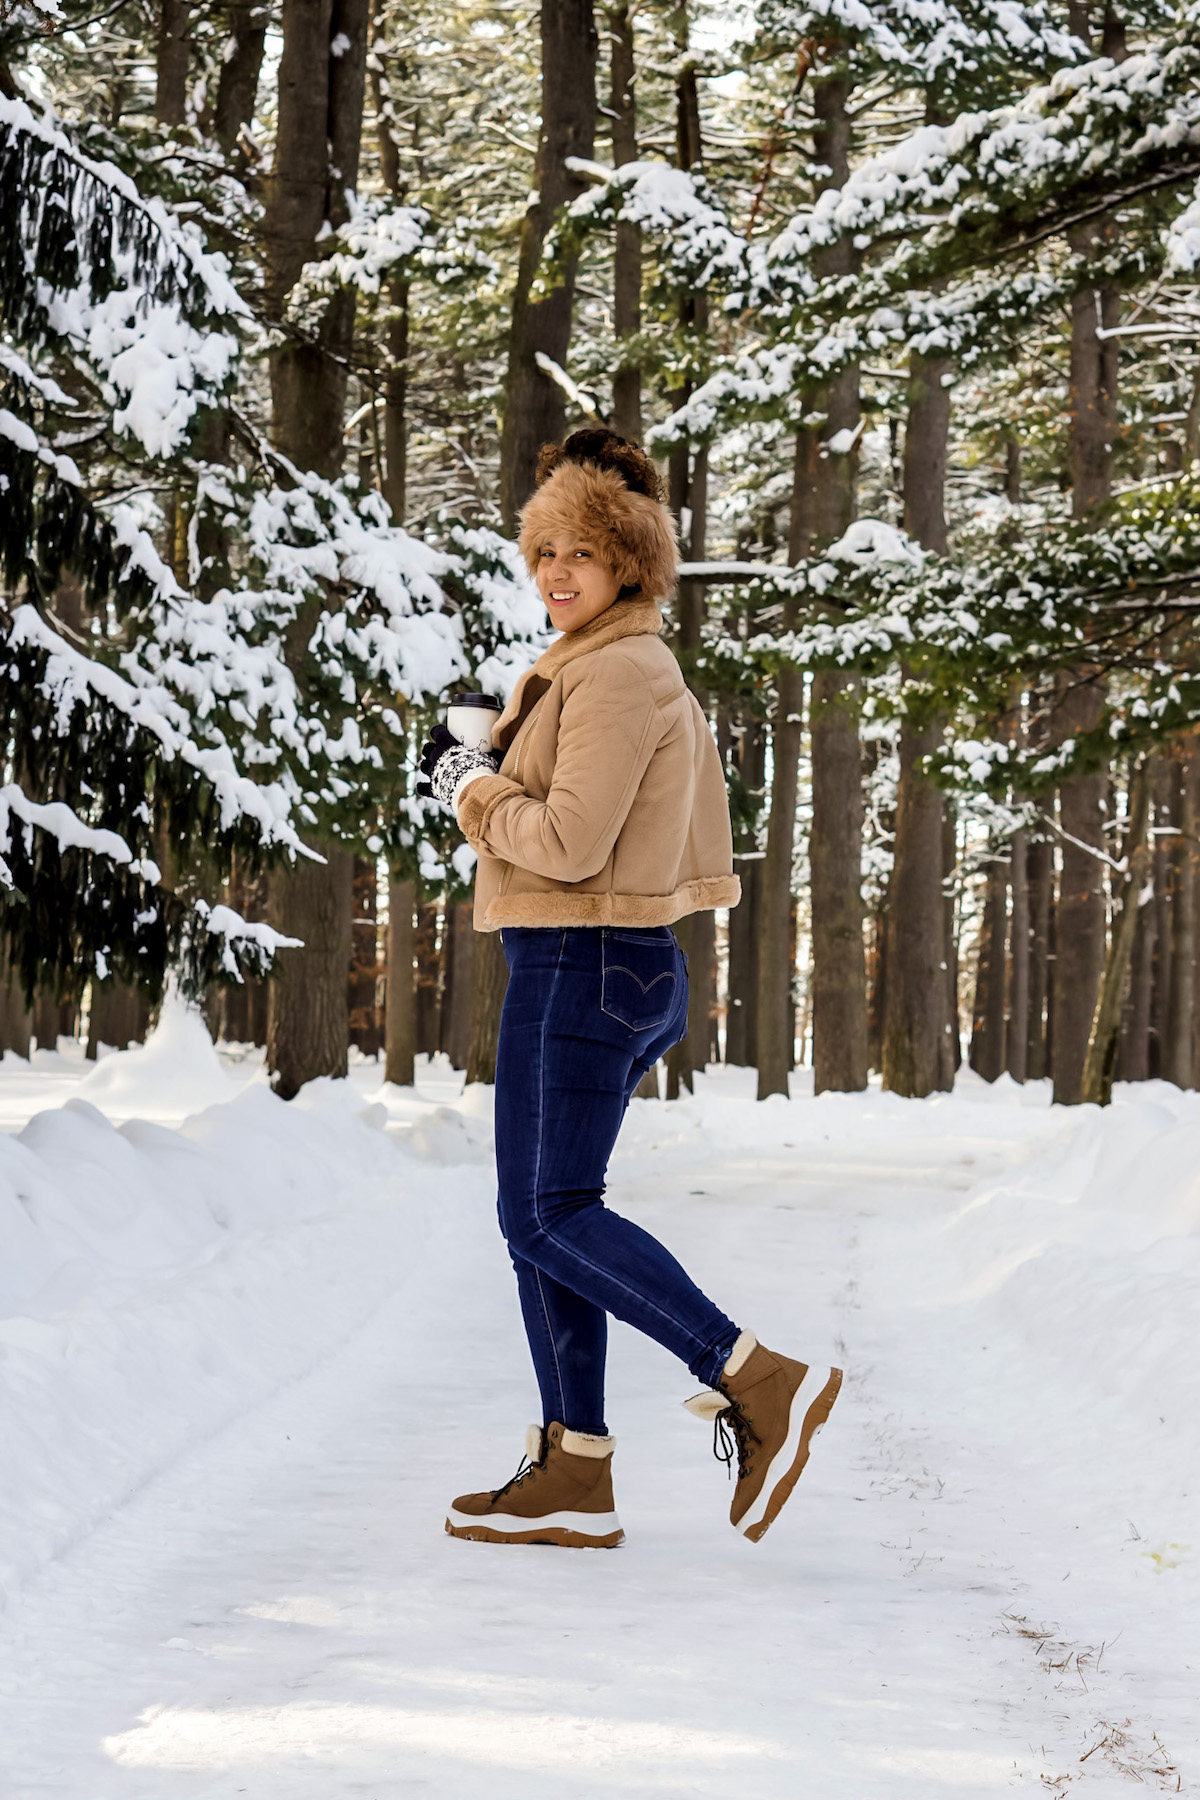 winter outfits casual cold fashion, black fashion blogger style outfits, winter outfits casual jeans boots, winter outfits women 20s style inspiration, fashion blogger outfit winter chic